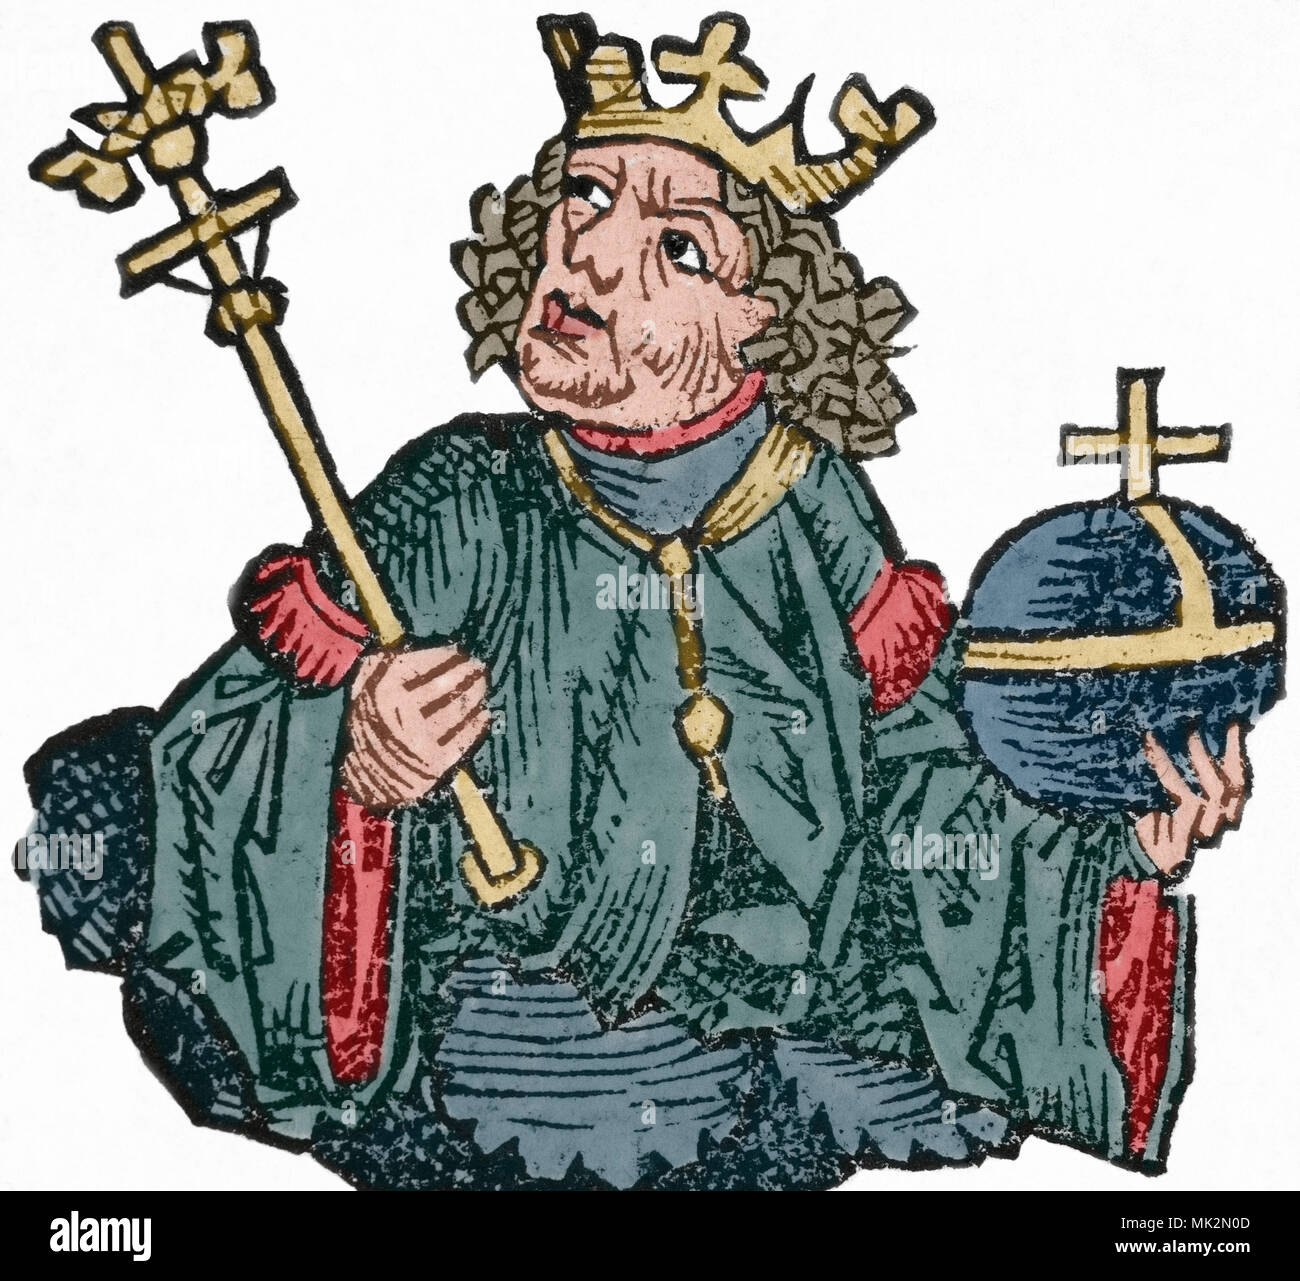 Charles II of Naples (1254-1309), also known as Charles the Lame. King of Naples, Count of Provence and Forcalquier (1285-1309), Prince of Achaea (1285-1289) and Count of Anjou and Maine (1285-1290). He was the son of Charles I of Anjou and Beatrice of Provence. Engraving, 16th century. Later colouration. - Stock Image